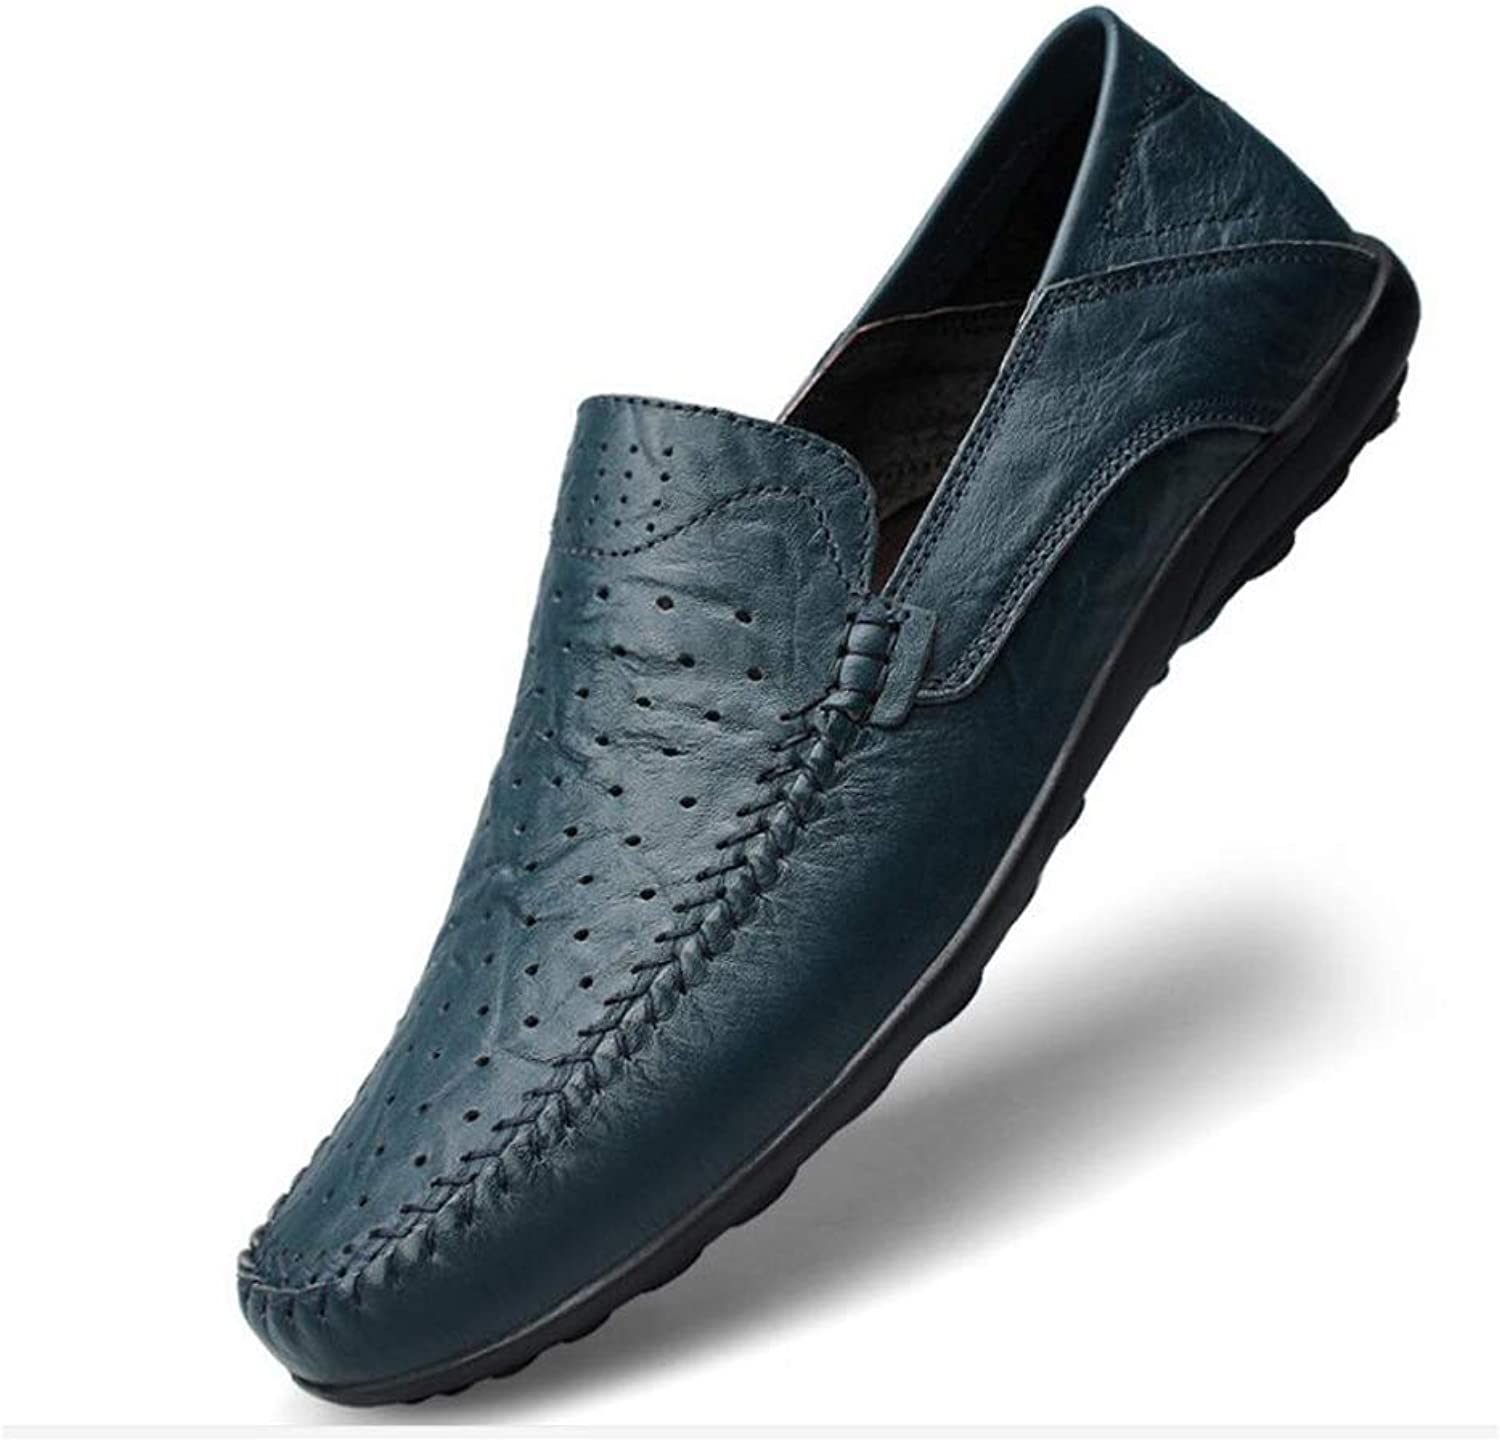 FuweiEncore Men's Comfort Loafers Leather Spring Summer   Autumn Comfort Loafers & Slip-Ons Walking shoes, running shoes, breathability business dress shoes (color   As shown, Size   One size)